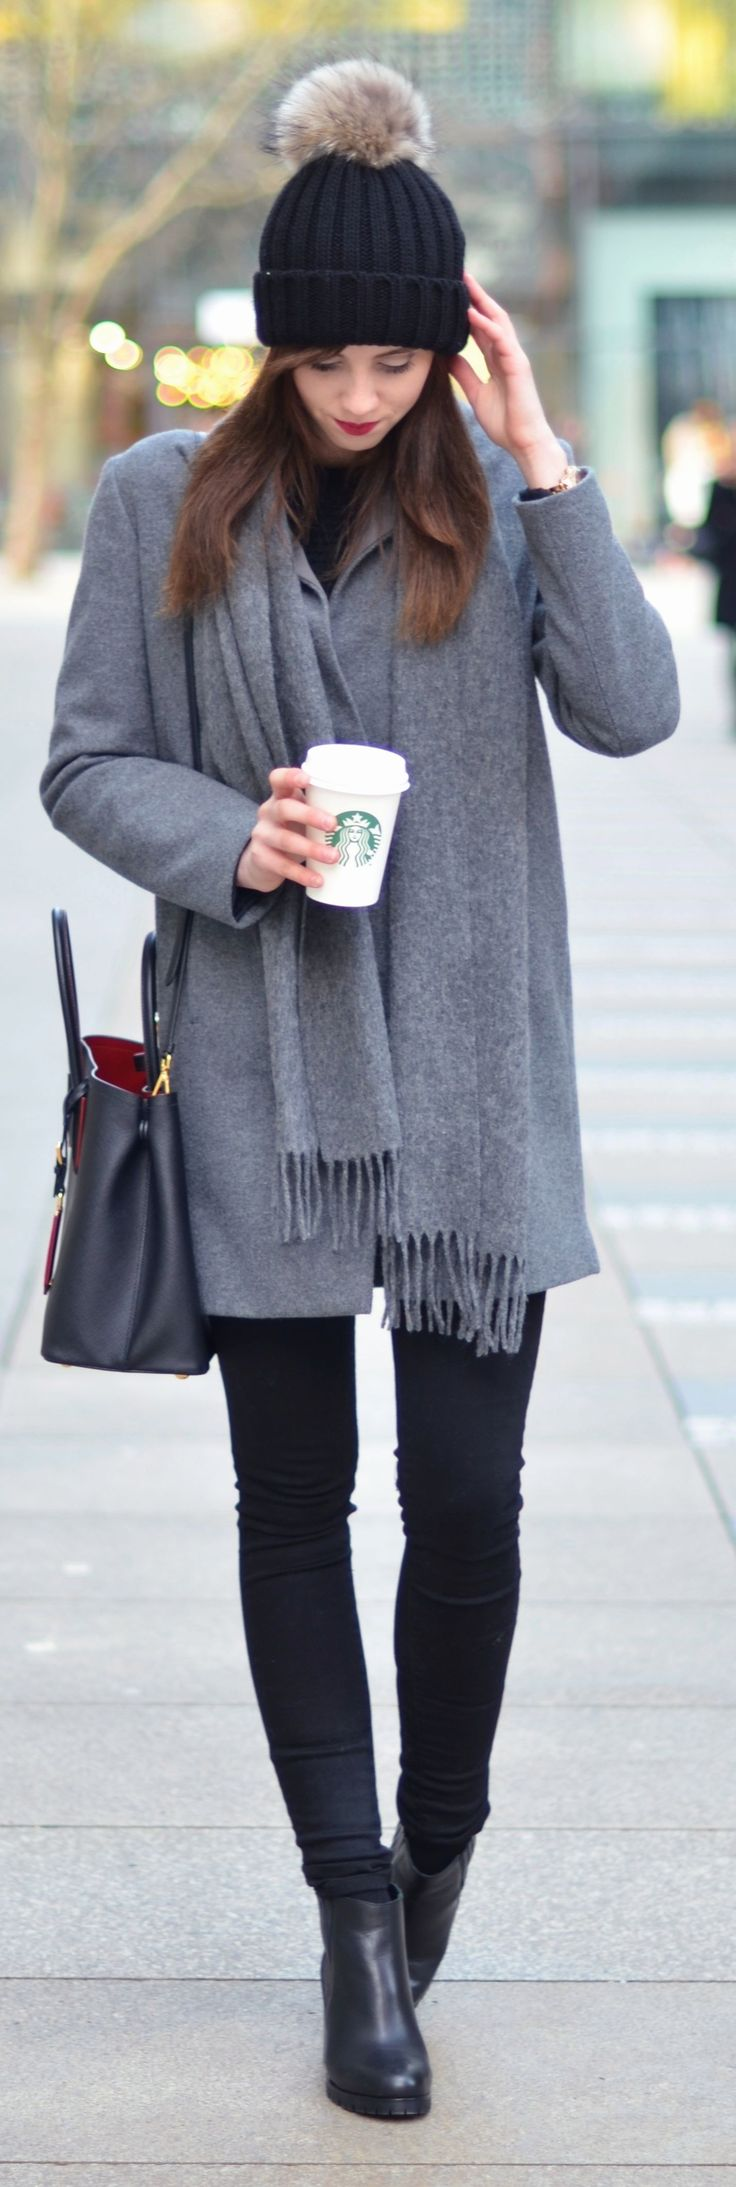 Grey And Black Winter Outfit Ideas for Fall/Winter.